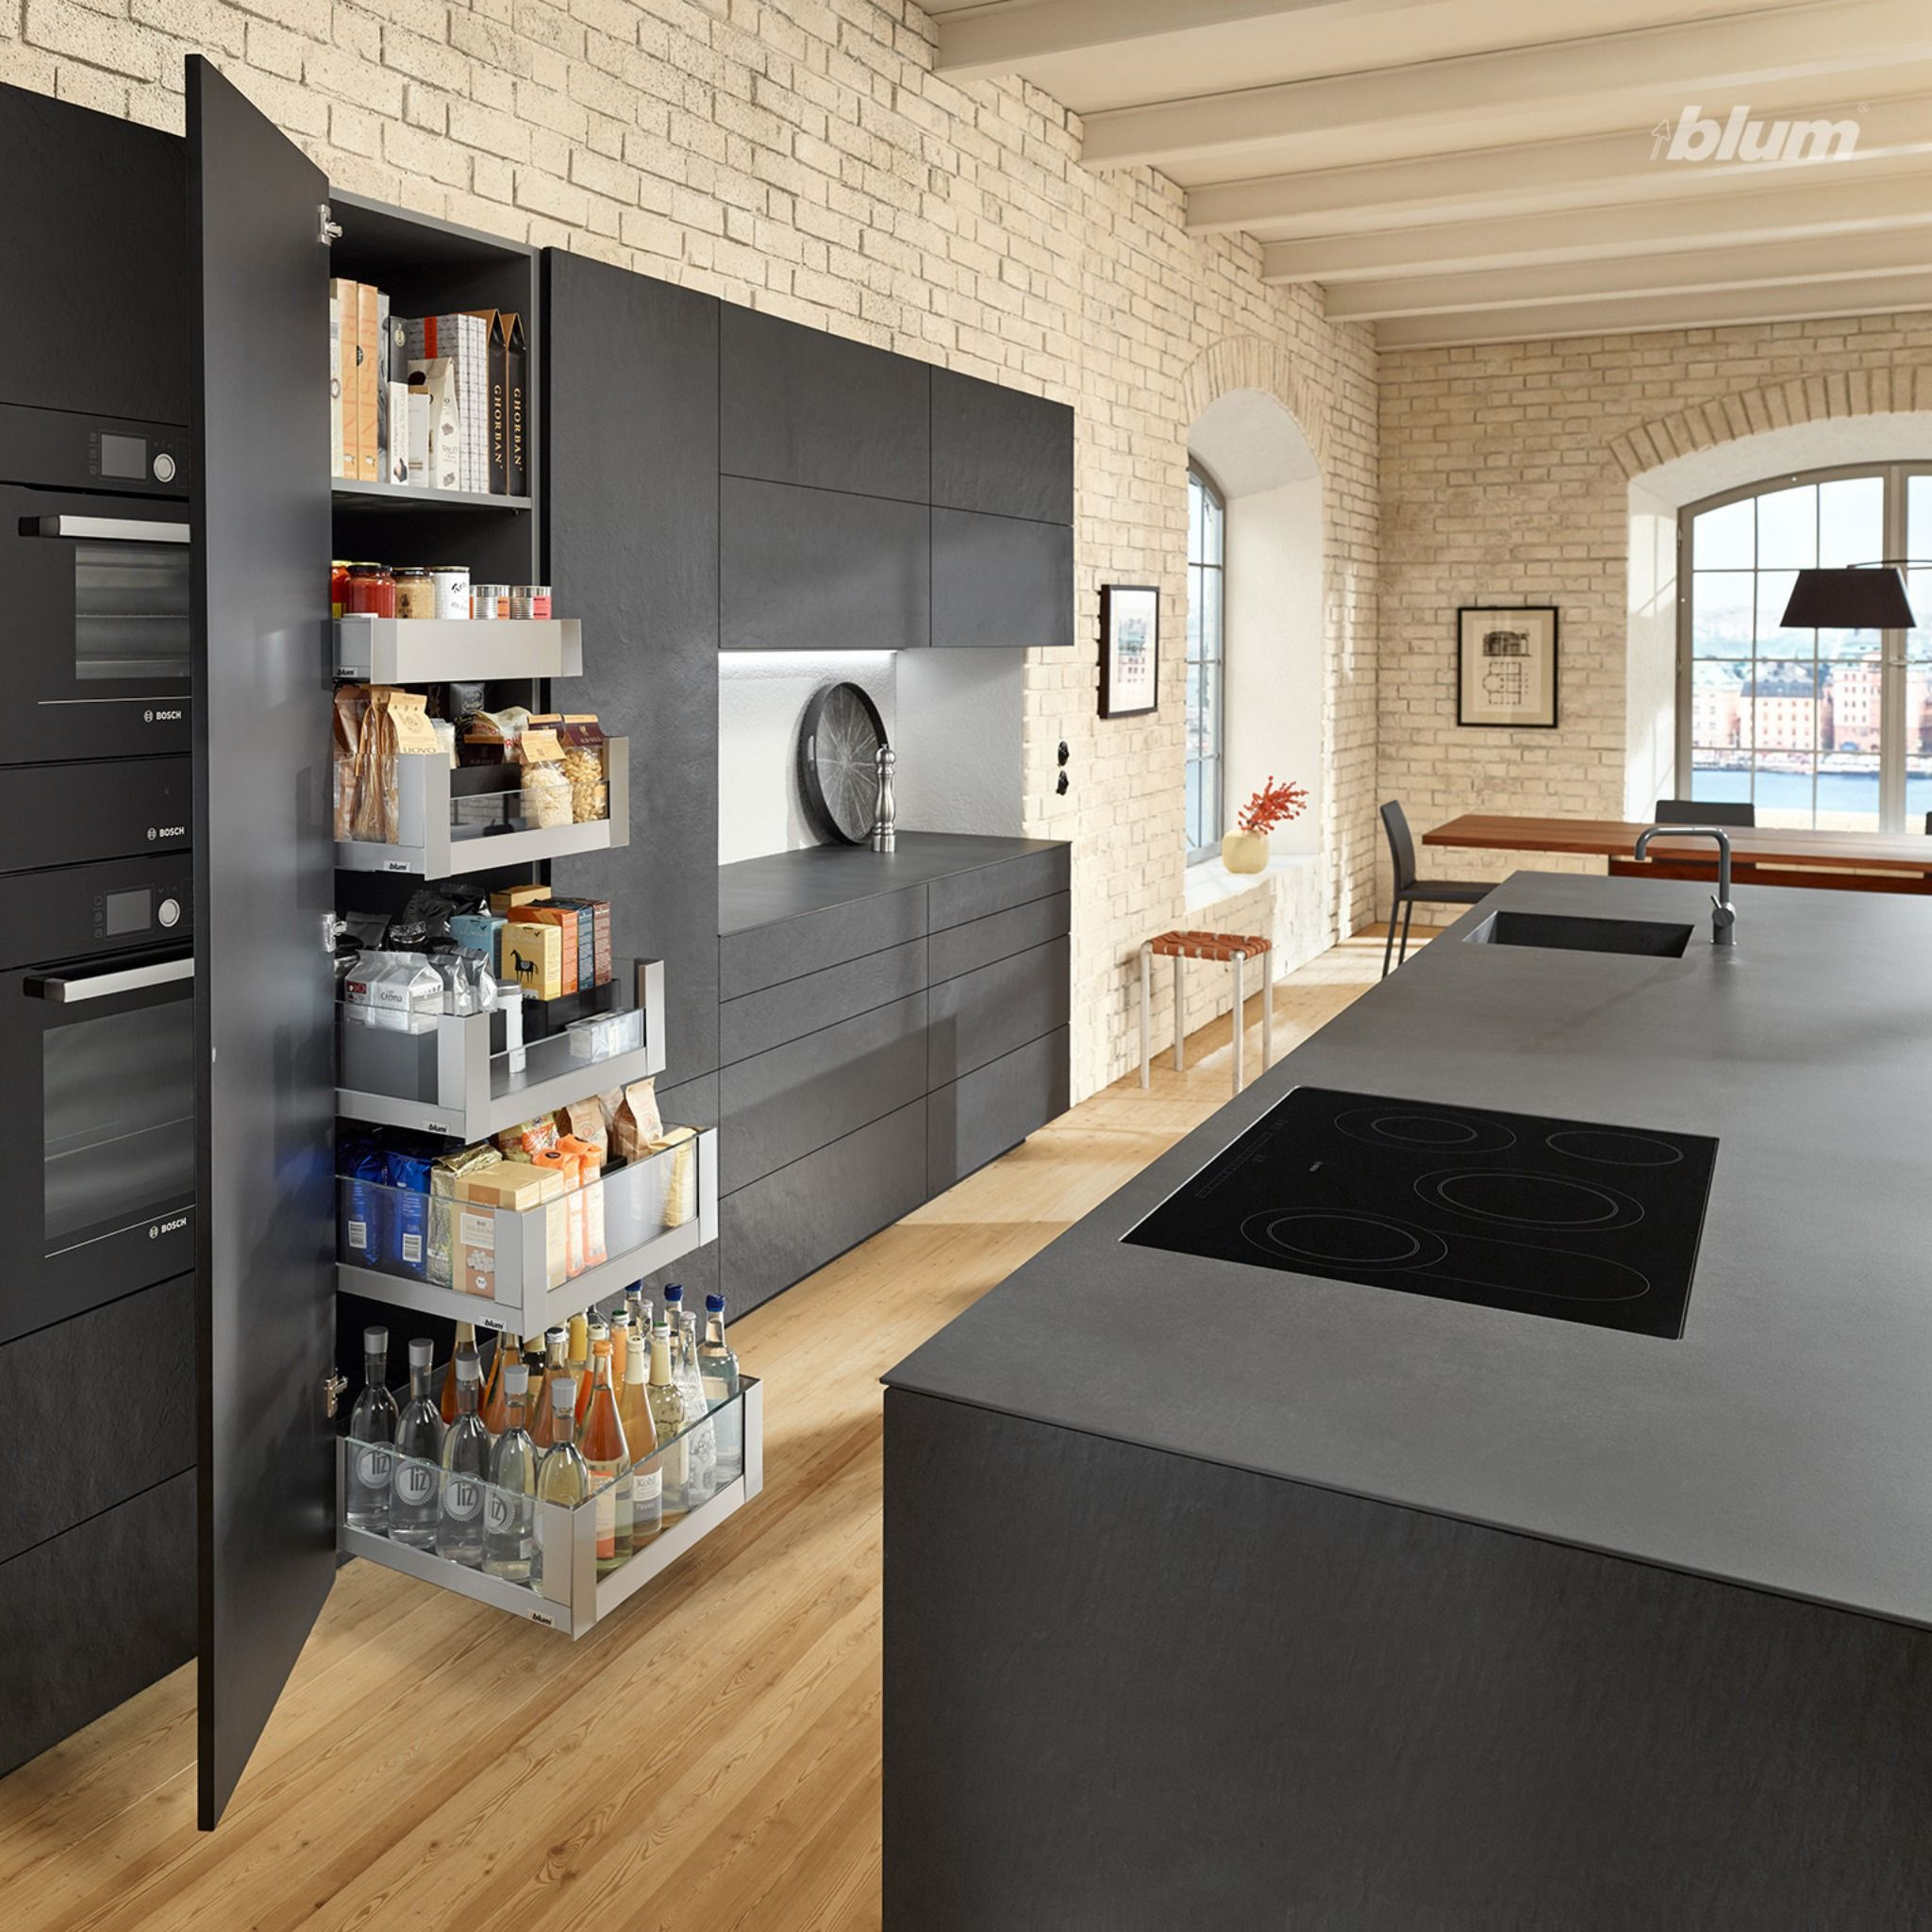 Black Kitchen Island With Handle Less Kitchen Cabinetry And Soft Closing Drawers Design Your Kitchen Kitchen Layout Buy Kitchen Cabinets